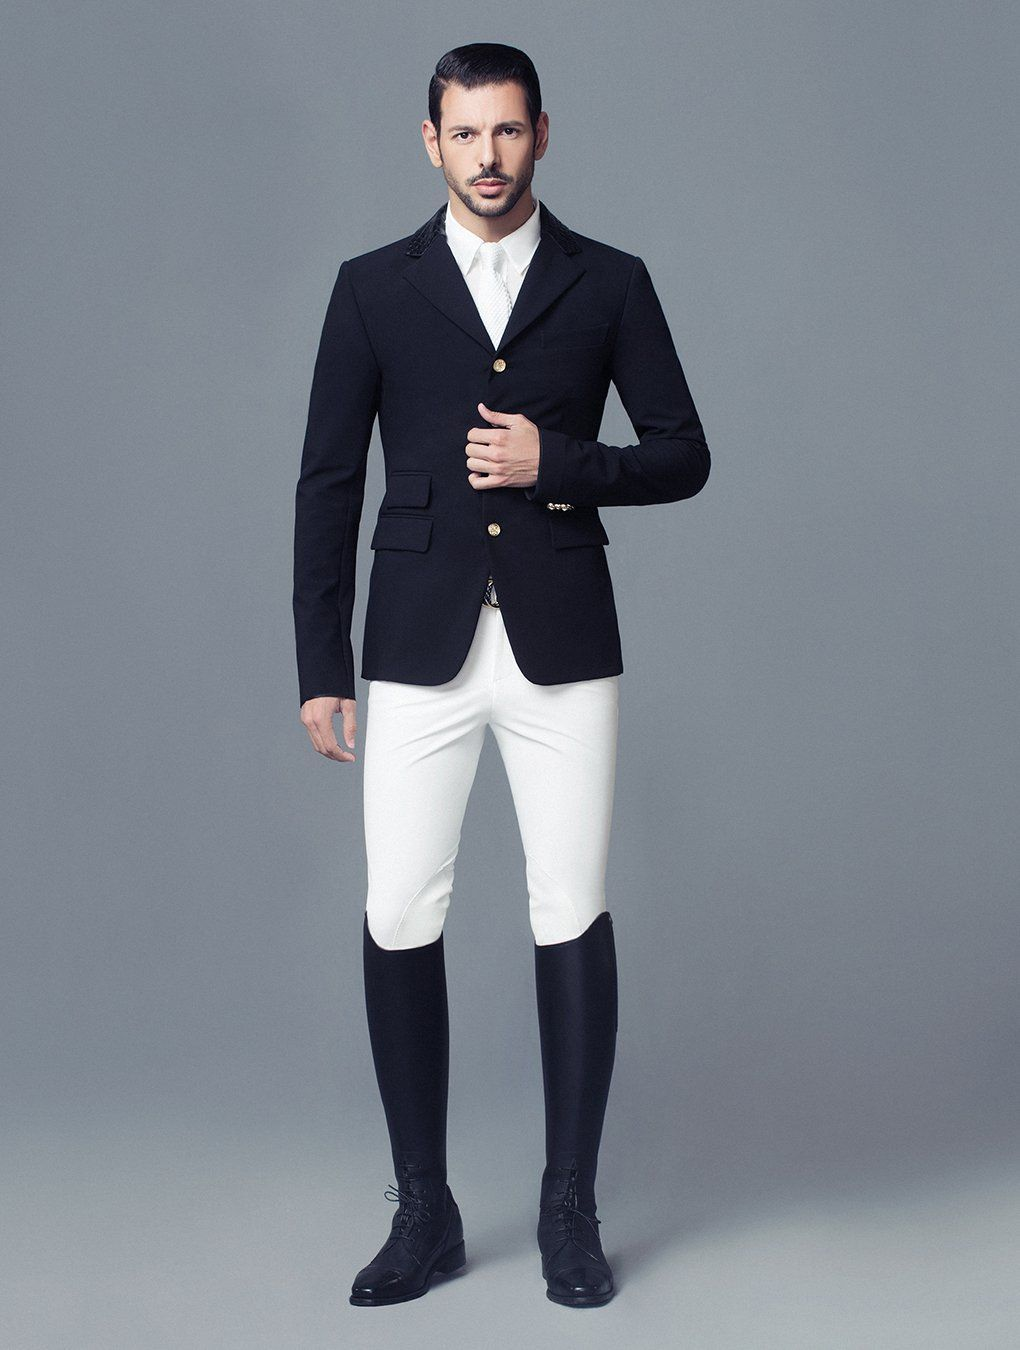 Equestrian Outfit Men S Equestrian Equestrian Outfits Mens Riding Boots